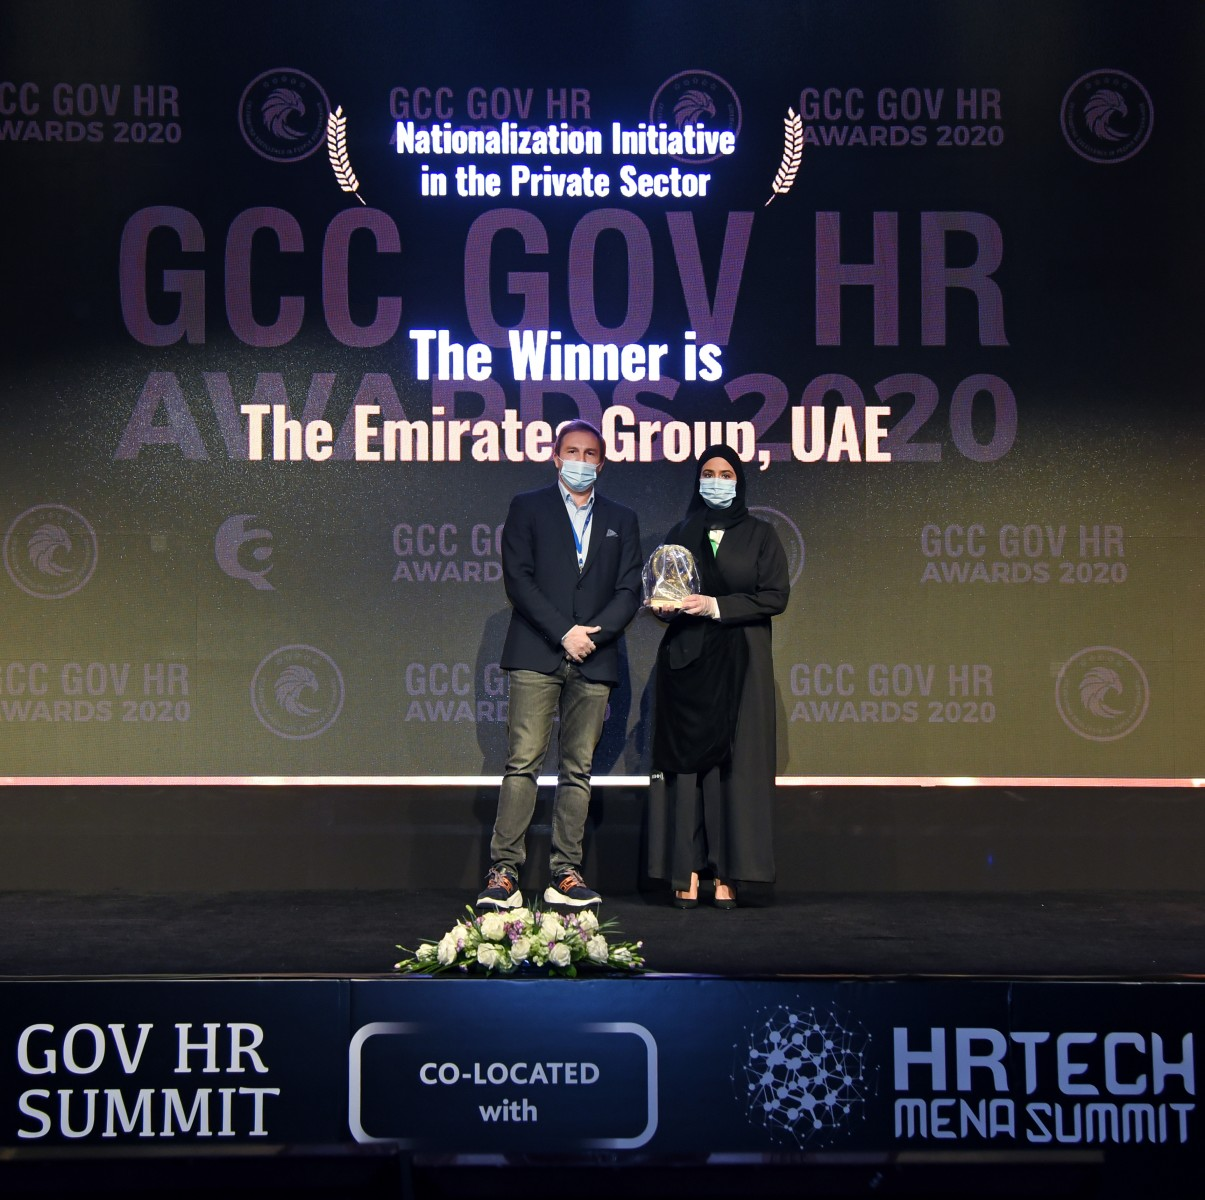 Emirates Group wins GCC GOV award for 'Best Nationalisation Initiative in the Private Sector 2020'